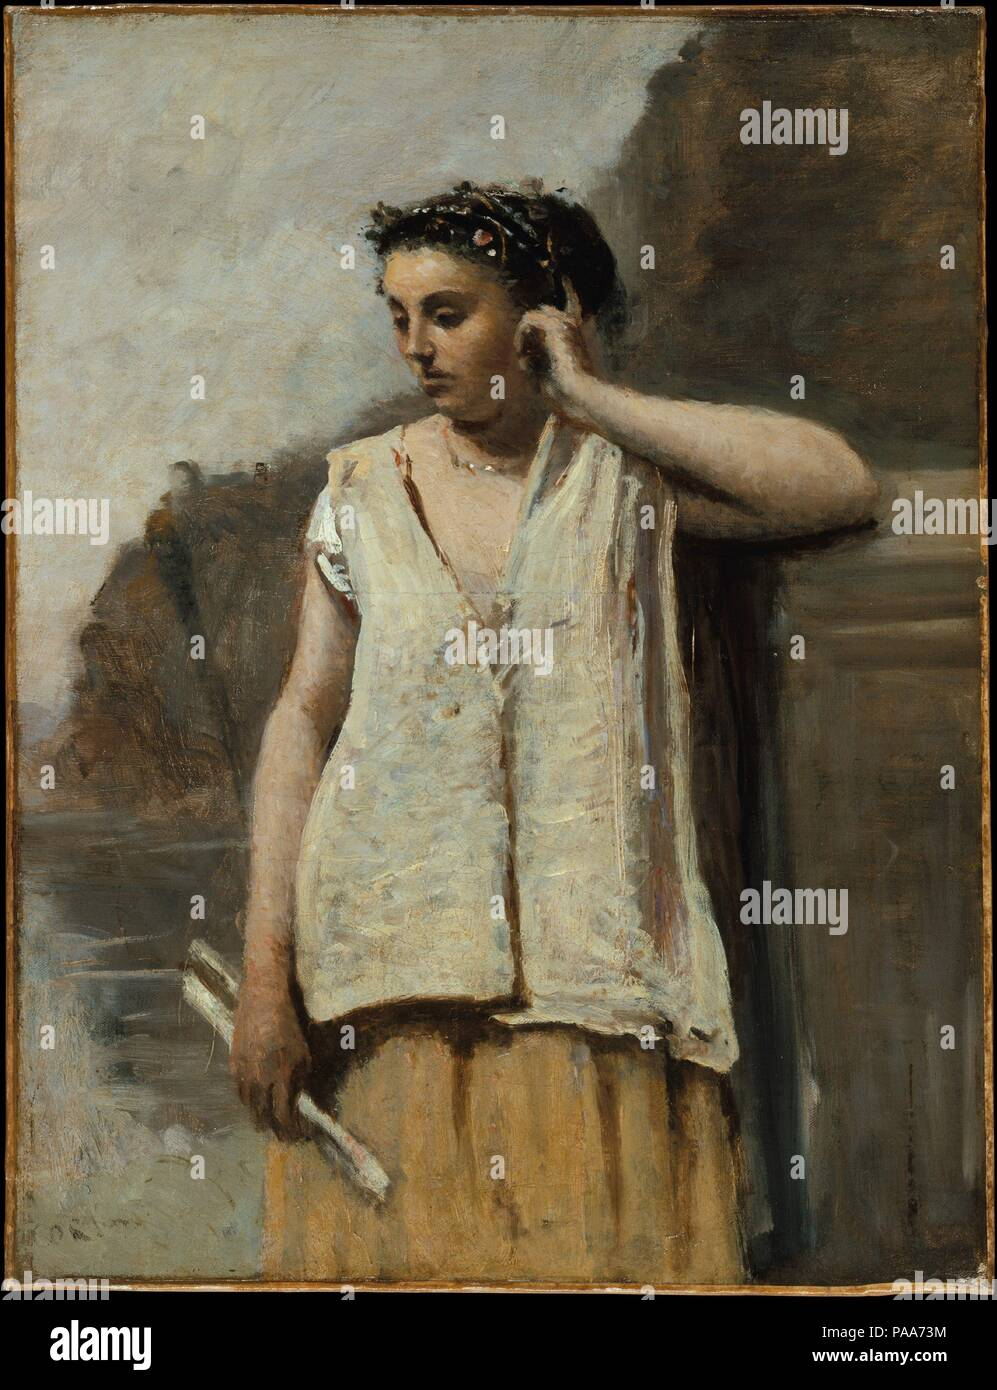 The Muse: History. Artist: Camille Corot (French, Paris 1796-1875 Paris). Dimensions: 18 1/8 x 13 7/8 in. (46 x 35.2 cm). Date: ca. 1865.  The model for this work may have been Emma Dobigny, who often sat for Corot at the end of his career. Corot painted four other Muses in the 1860s. All of them evoke a mood of melancholy. Museum: Metropolitan Museum of Art, New York, USA. - Stock Image